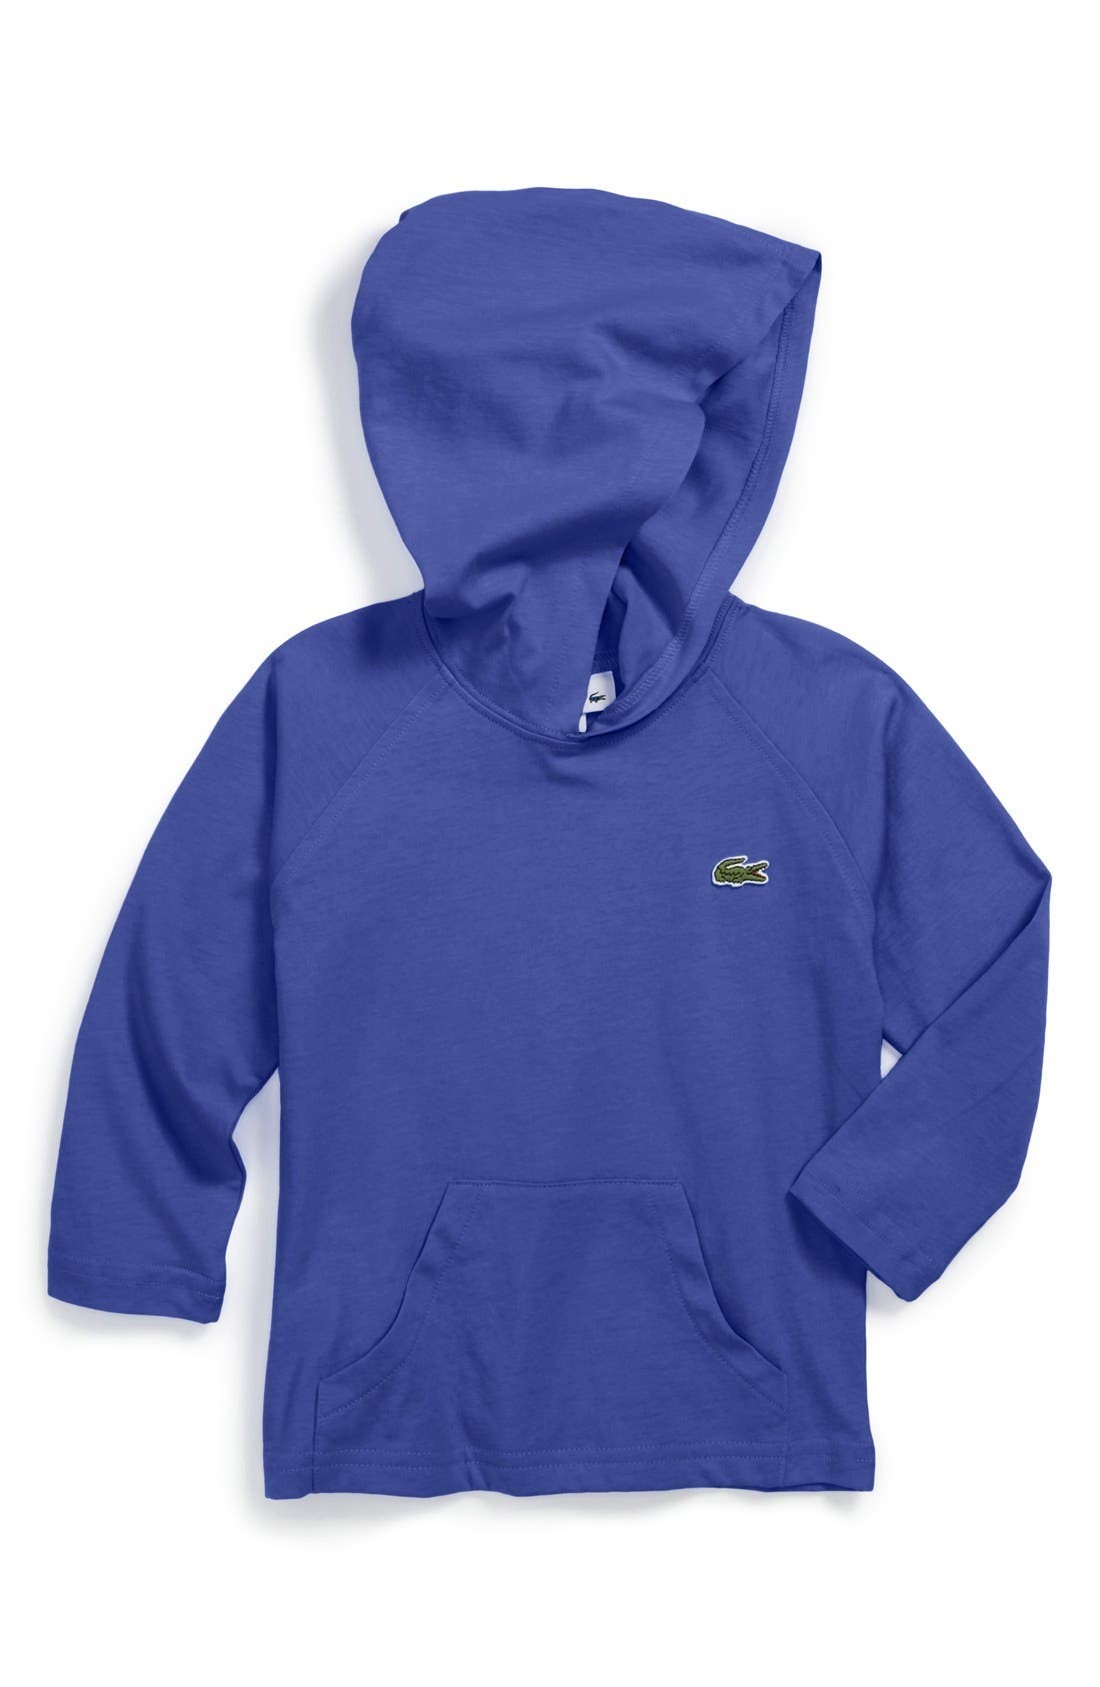 Alternate Image 1 Selected - Lacoste Pullover Hoodie (Toddler)